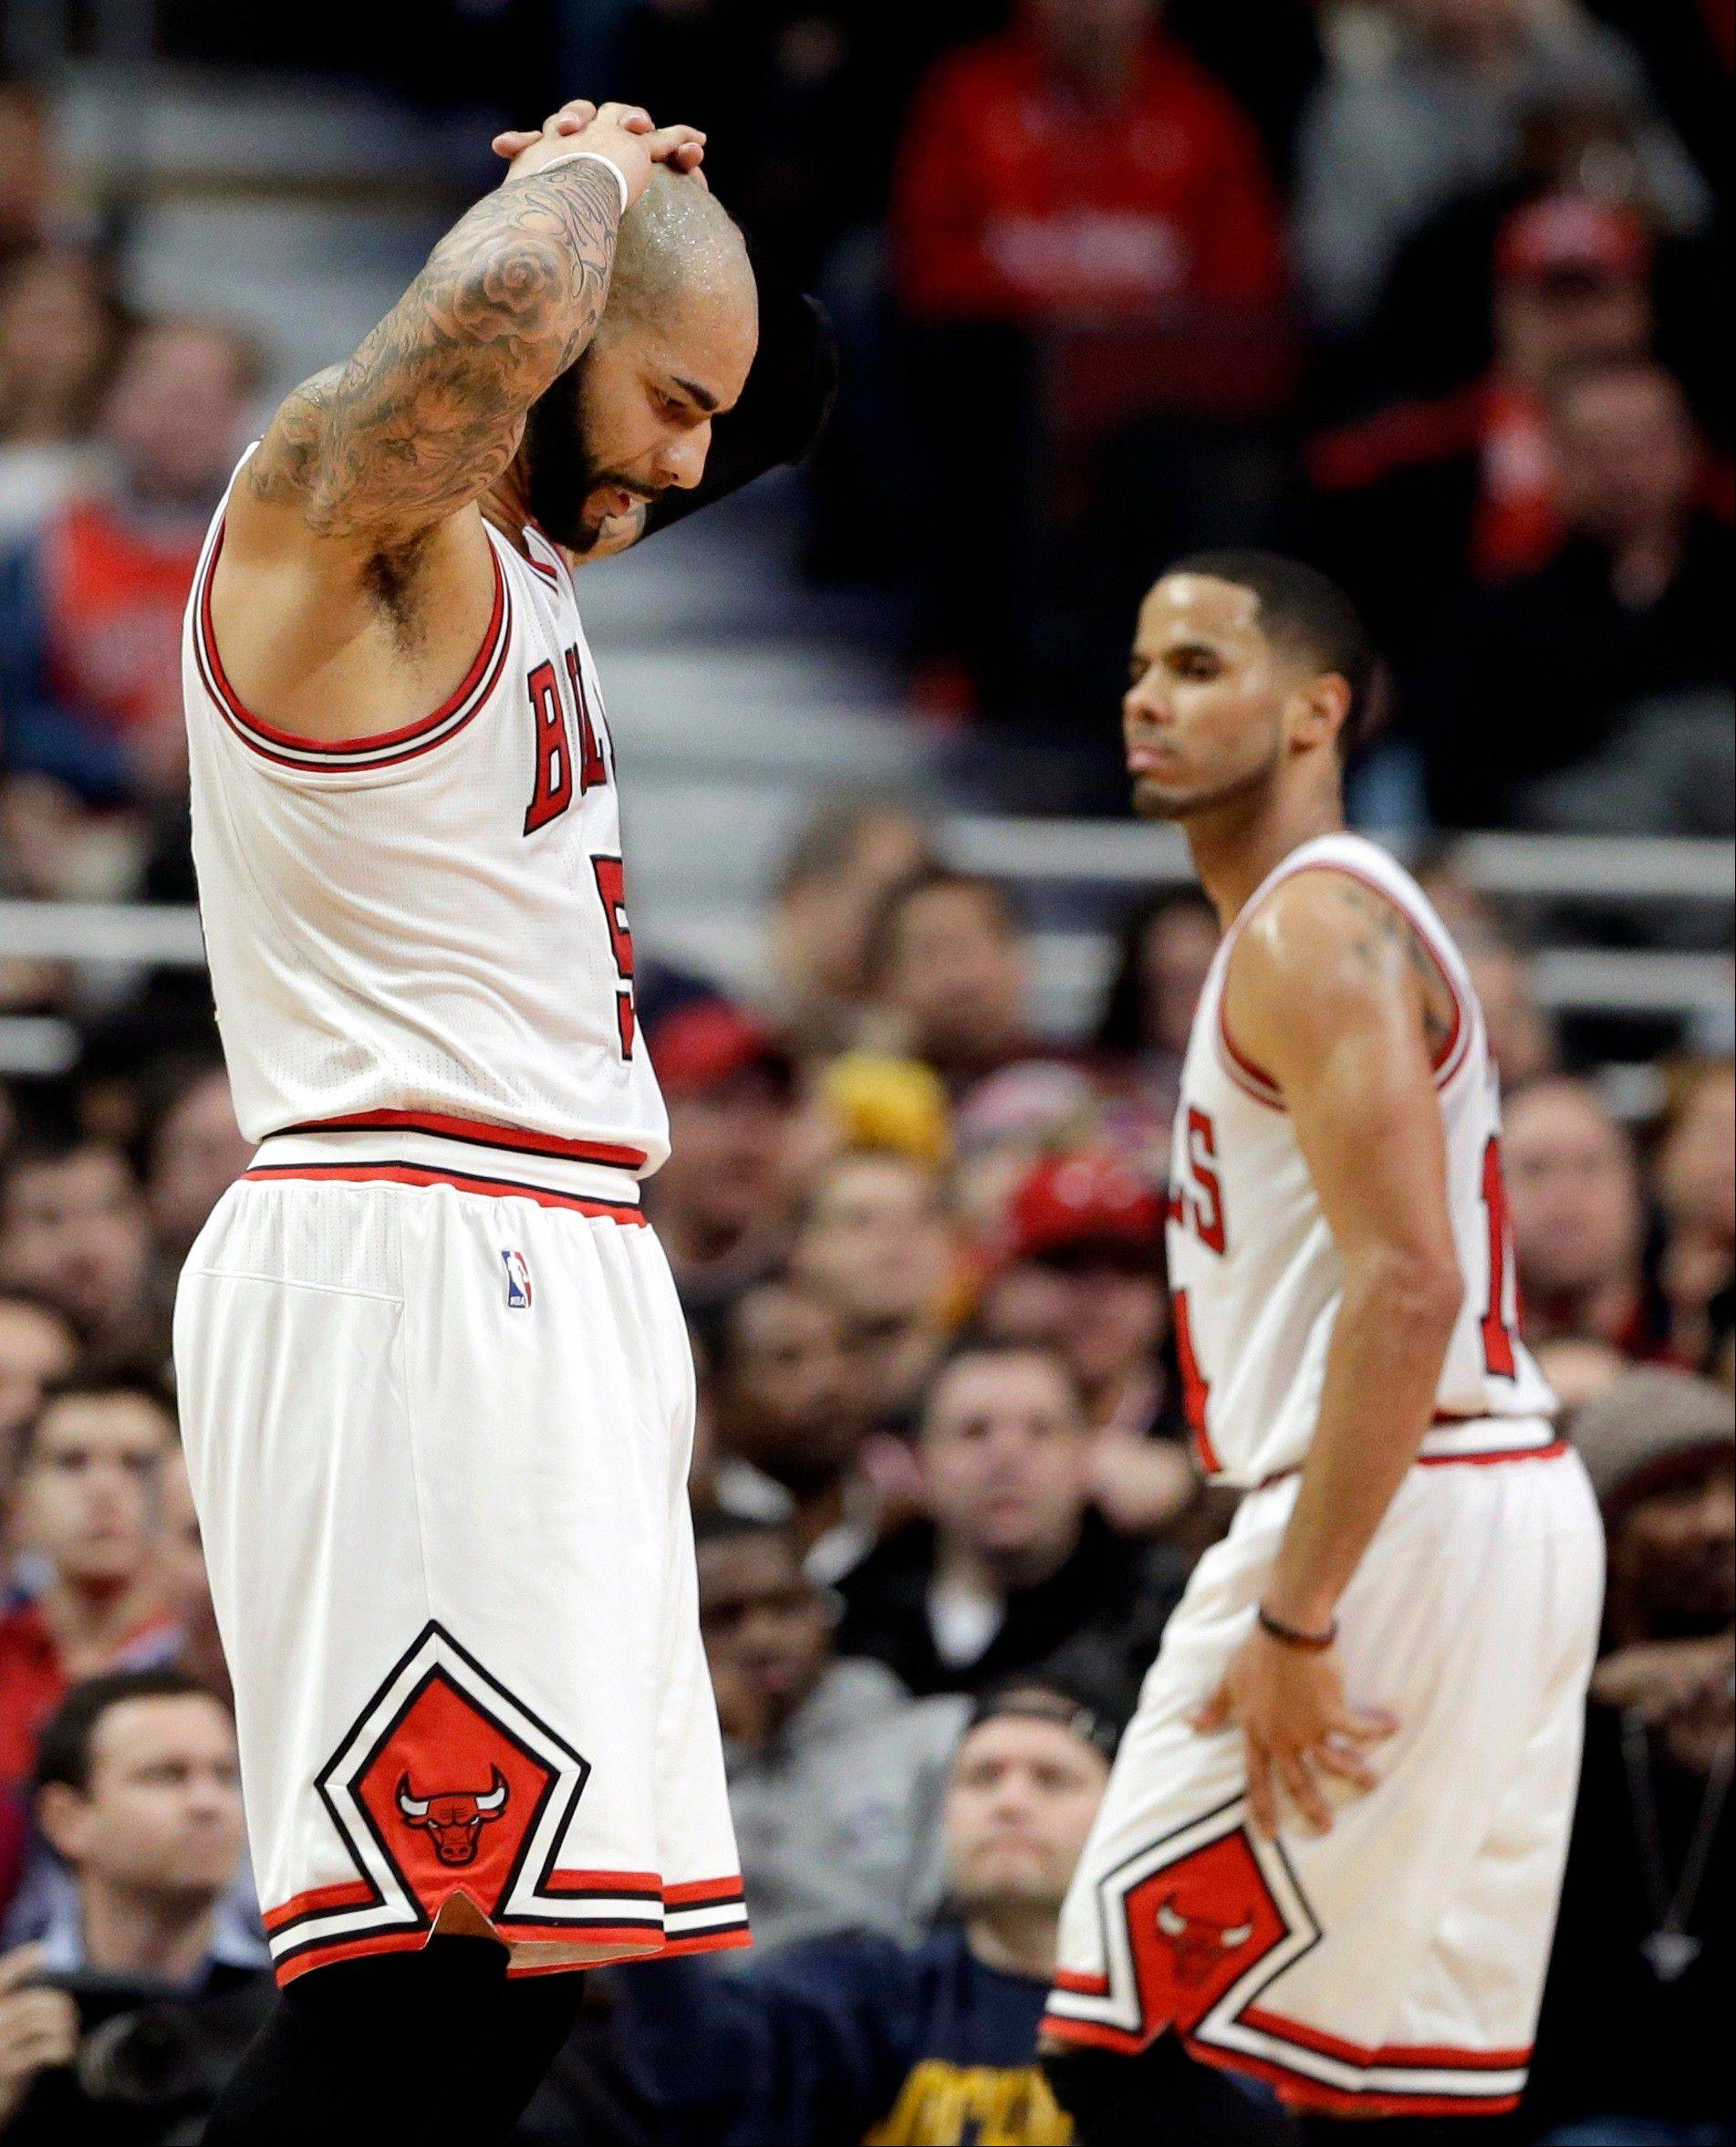 Carlos Boozer (5), left, and D.J. Augustin (14) react after the Clippers' Darren Collison was fouled in the second half of the Bulls' loss on Friday at the United Center.